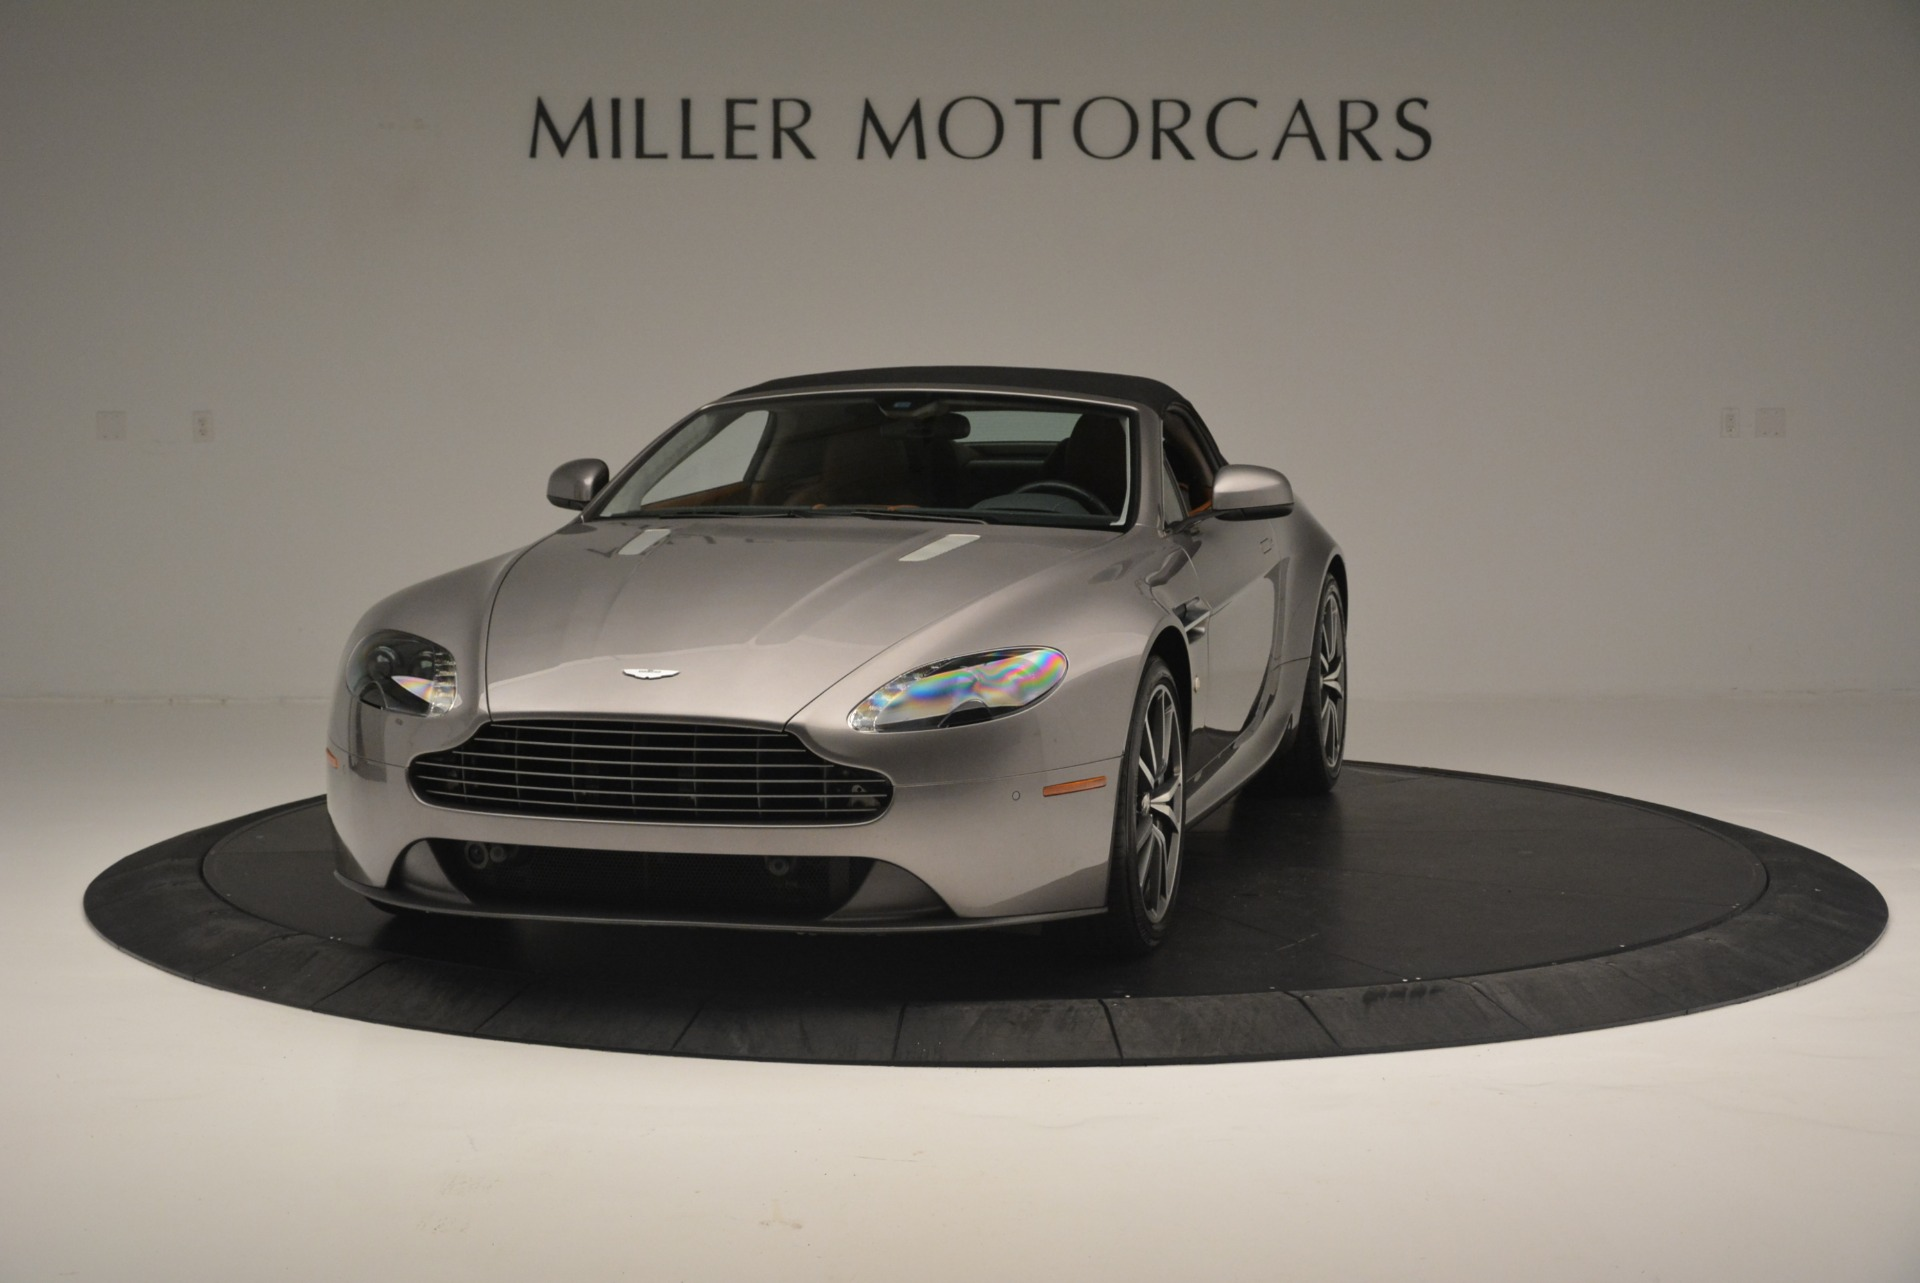 Used 2015 Aston Martin V8 Vantage Roadster For Sale In Greenwich, CT 2463_p13